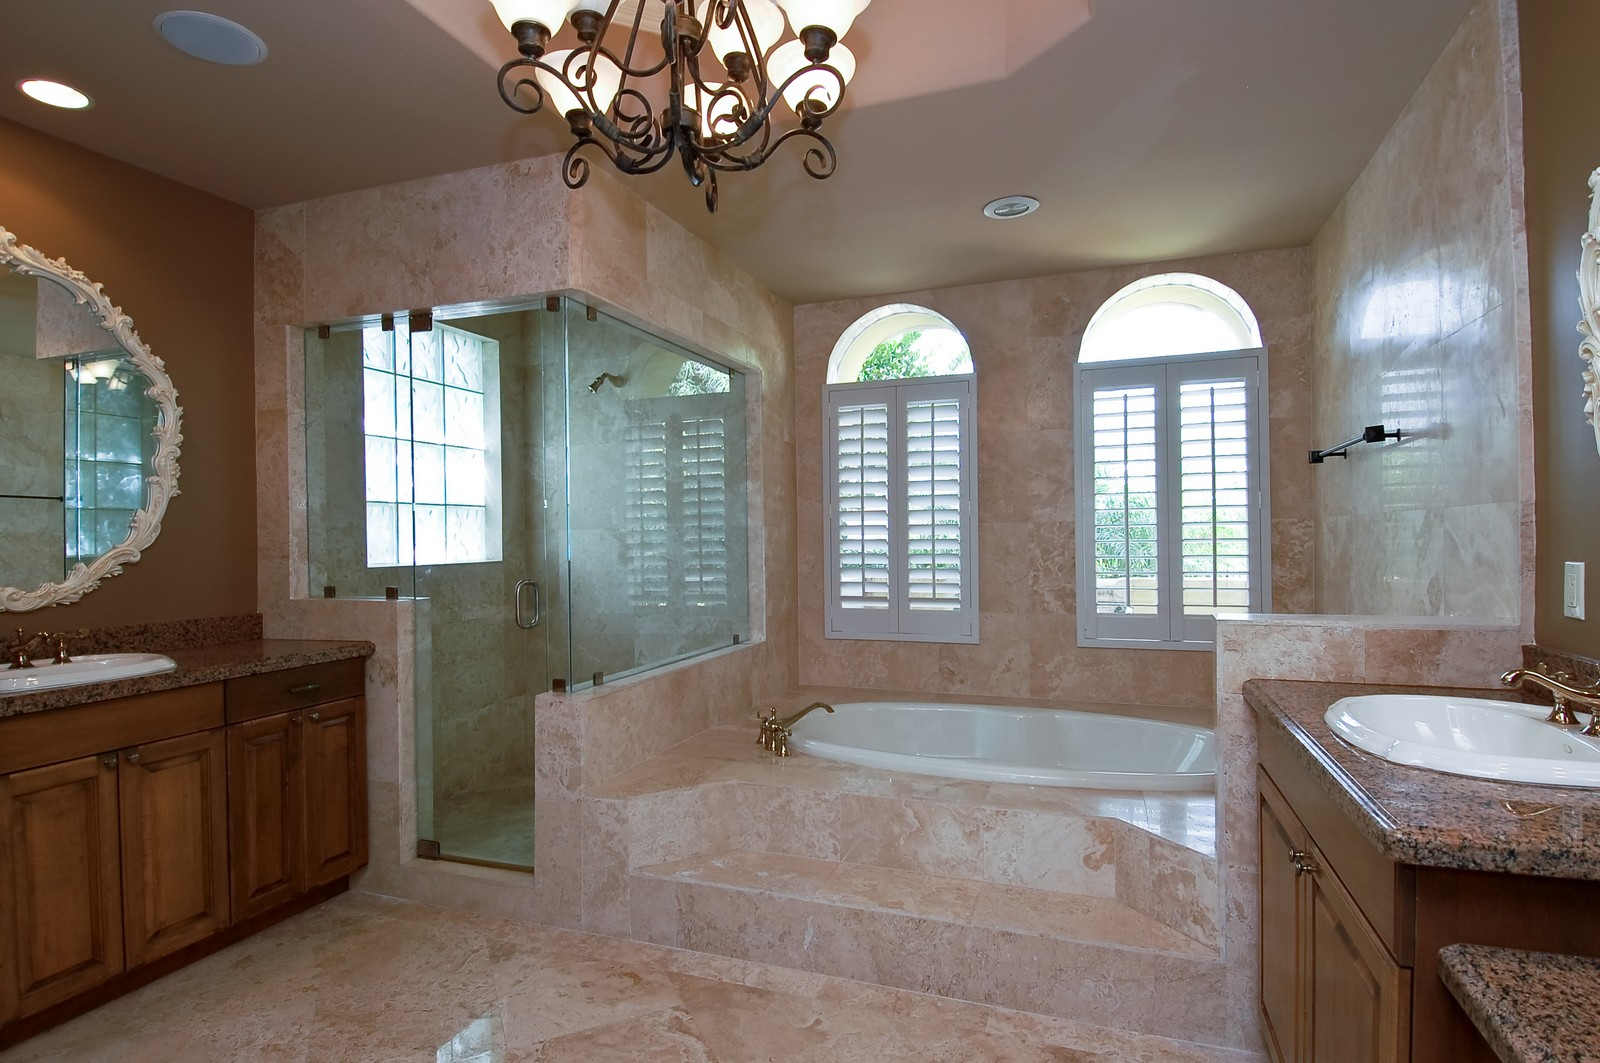 Real Estate Photography - 2325 NE 28th Ct, Lighthouse Point, FL, 33064 - Master Bathroom